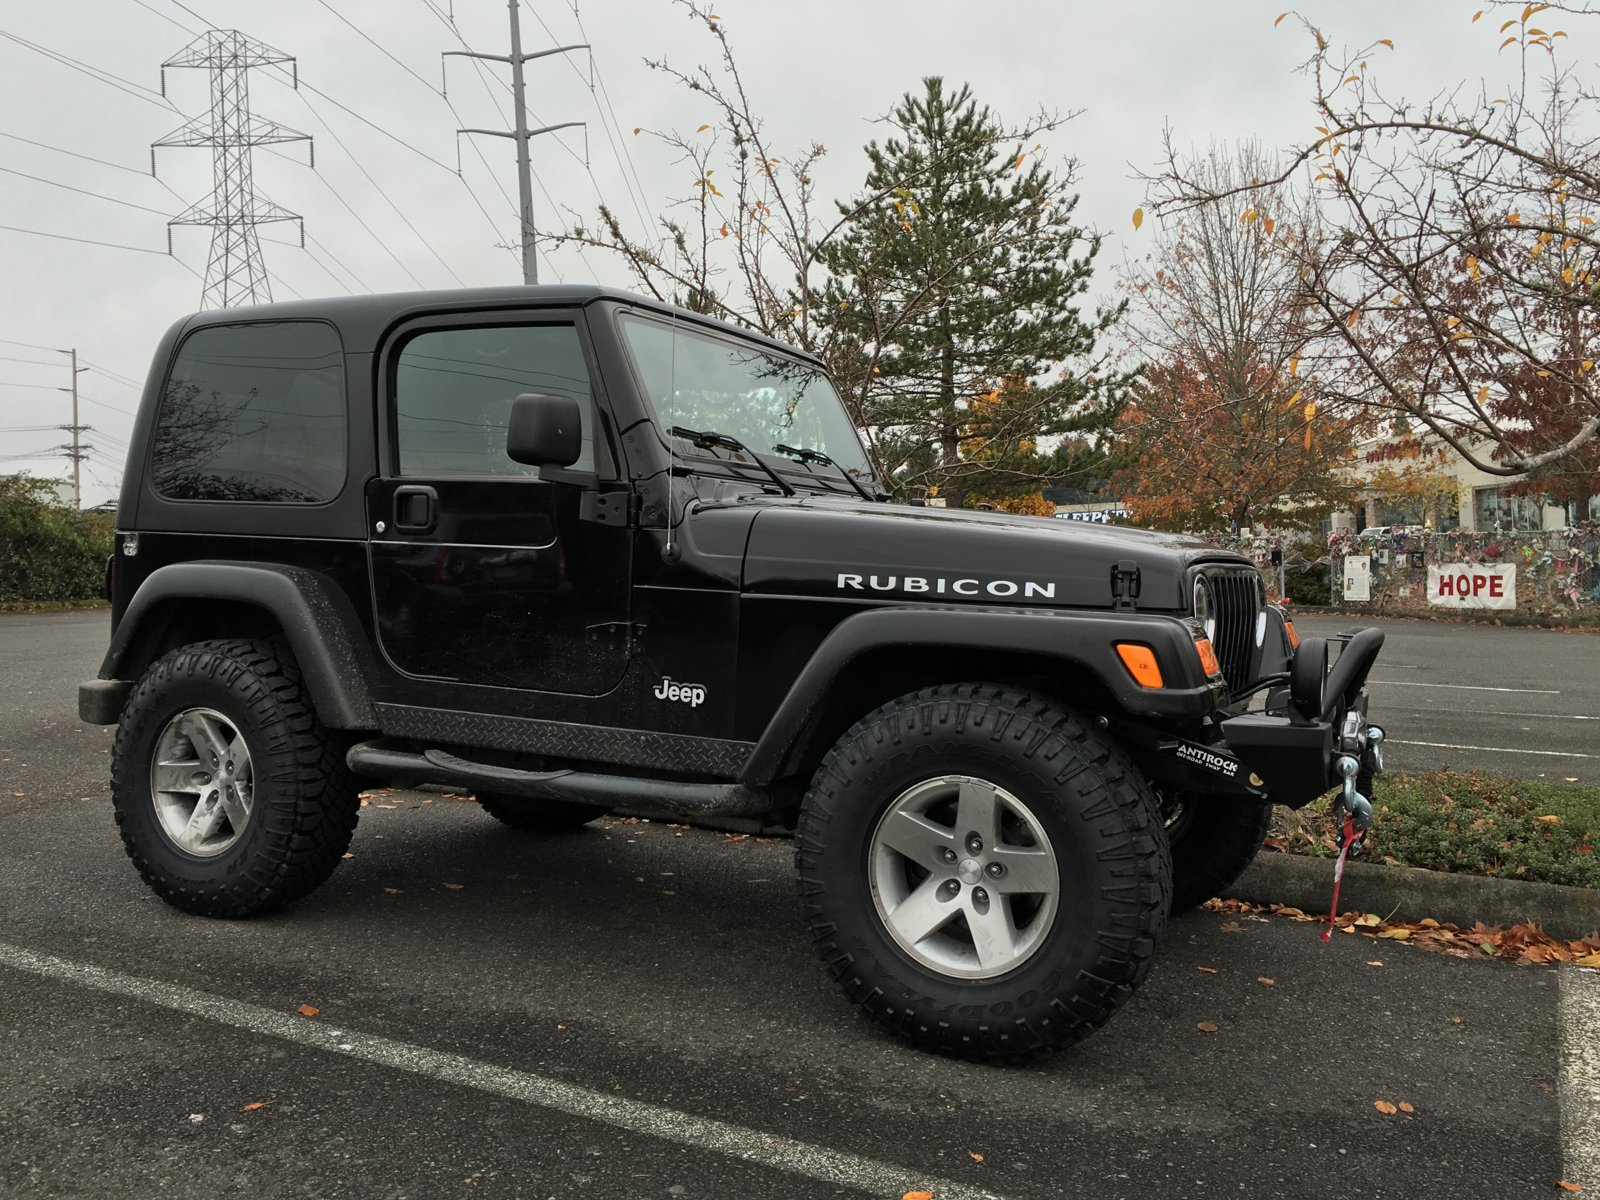 Jeep Jk Tires >> Let's see your wheels! | Jeep Wrangler TJ Forum